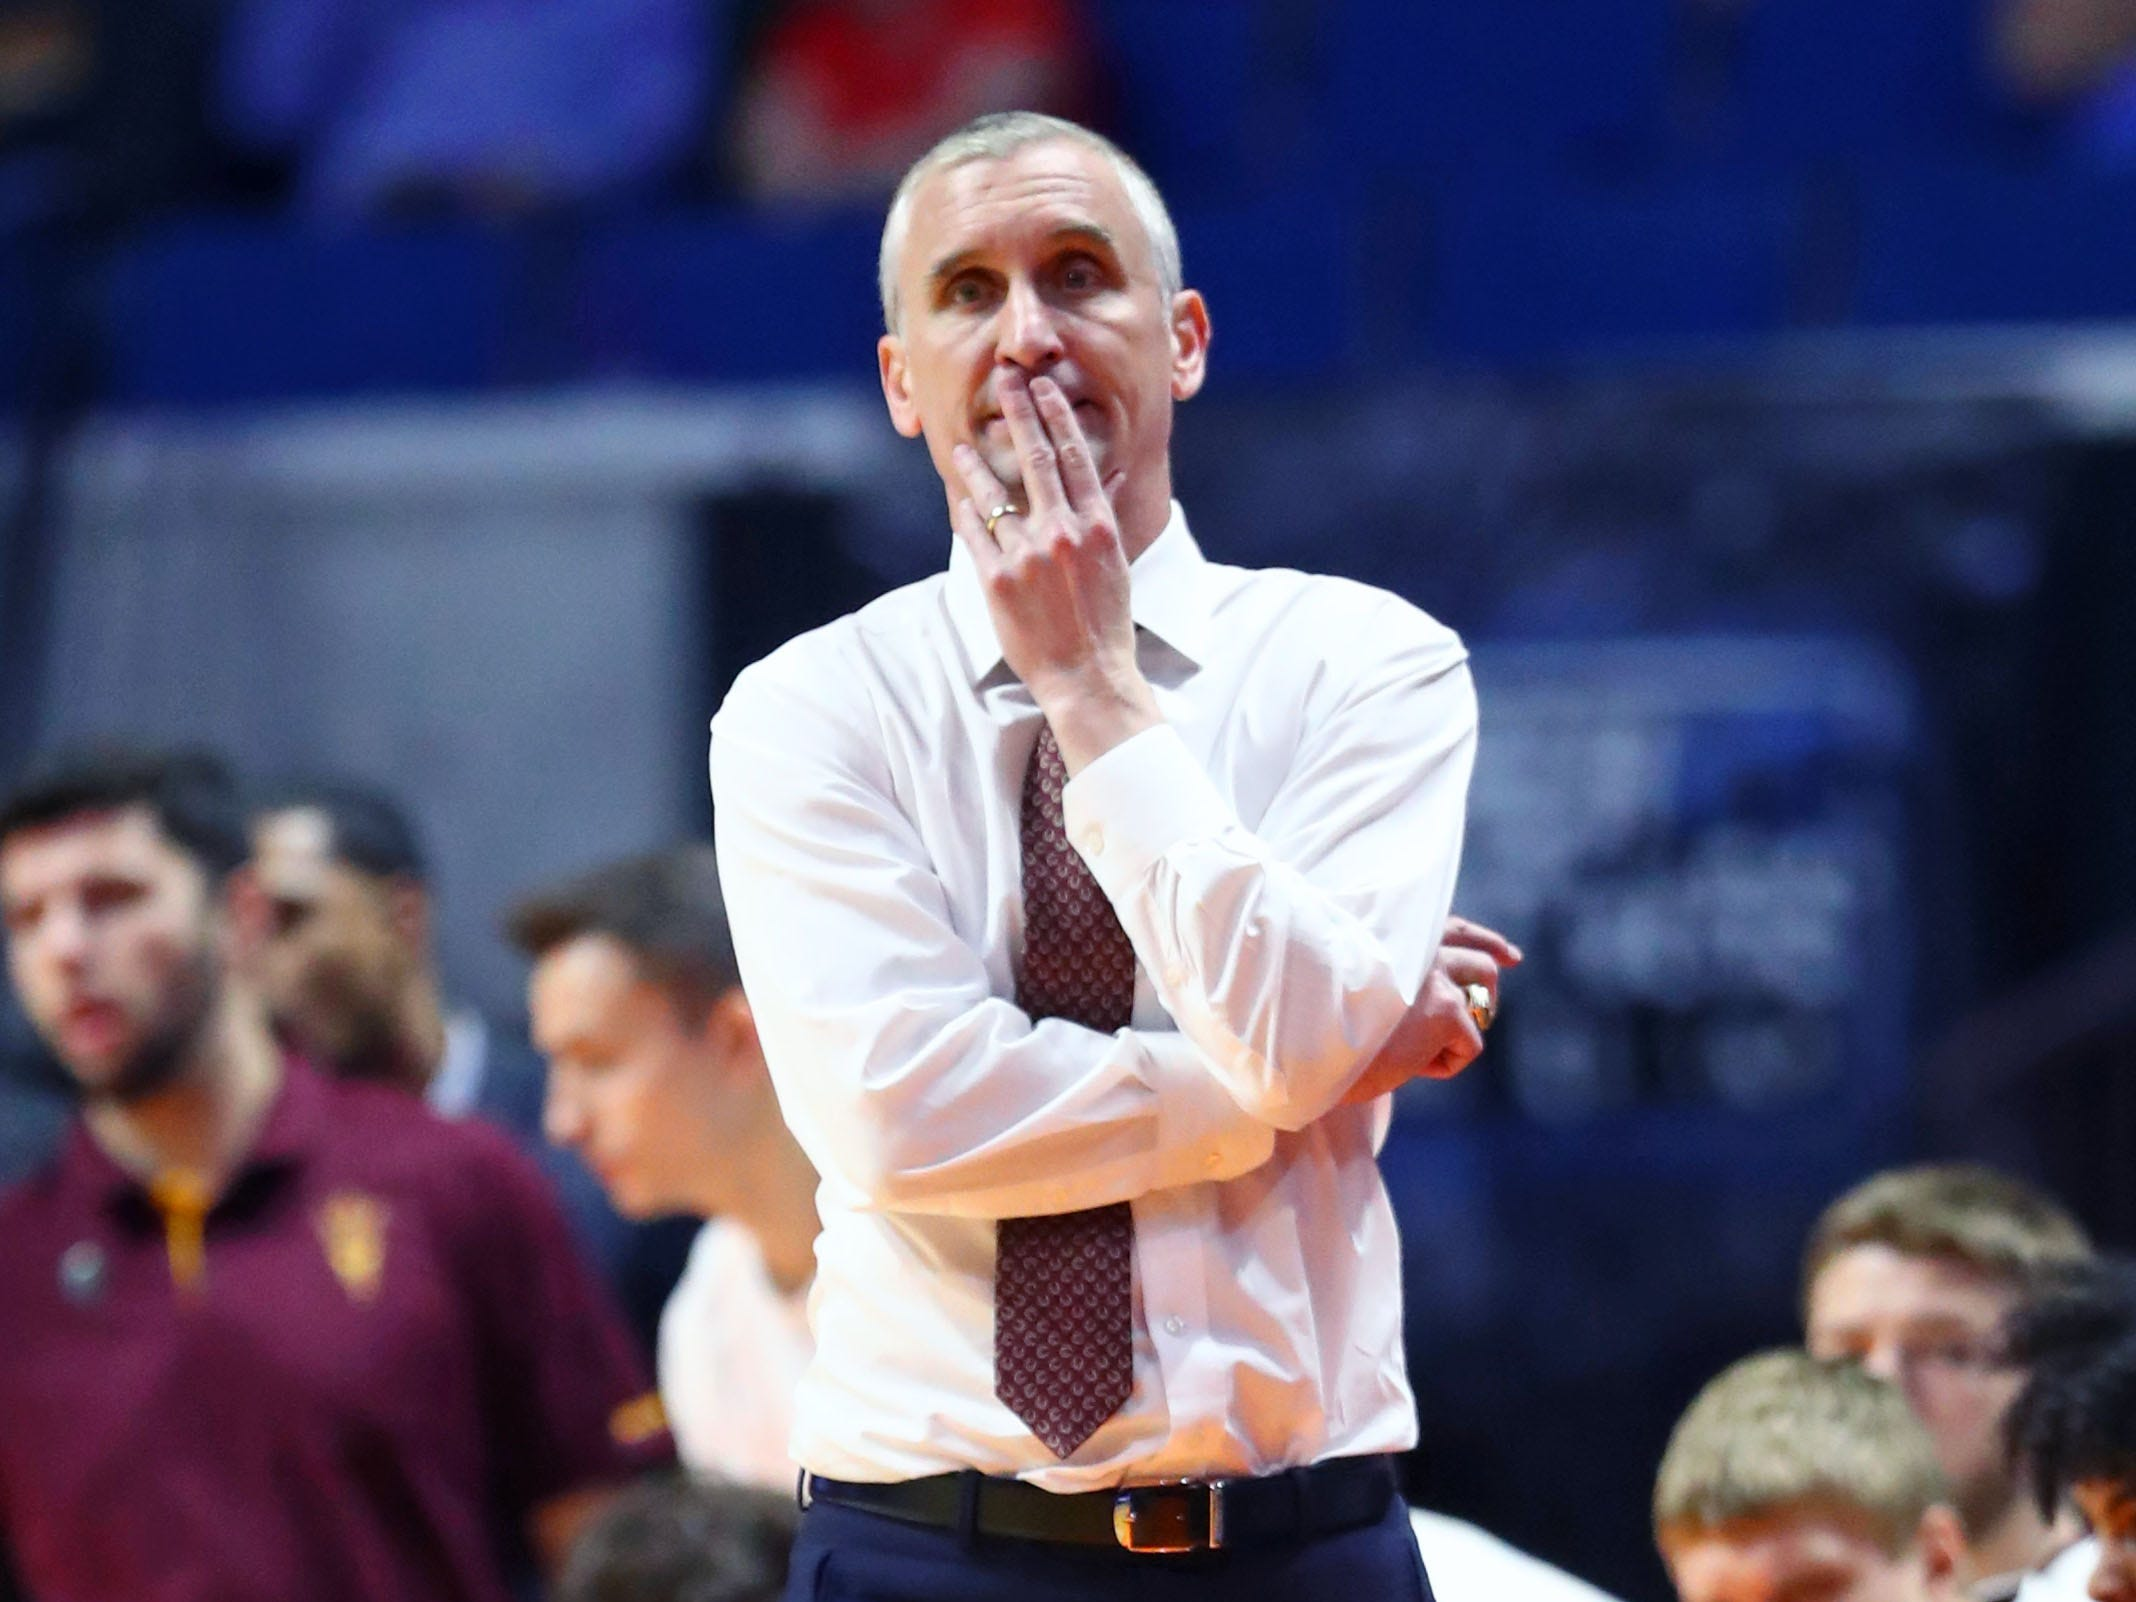 Mar 22, 2019; Tulsa, OK, USA; Arizona State Sun Devils head coach Bobby Hurley reacts to a play during the second half of their game against the Buffalo Bulls in the first round of the 2019 NCAA Tournament at BOK Center. Mandatory Credit: Mark J. Rebilas-USA TODAY Sports